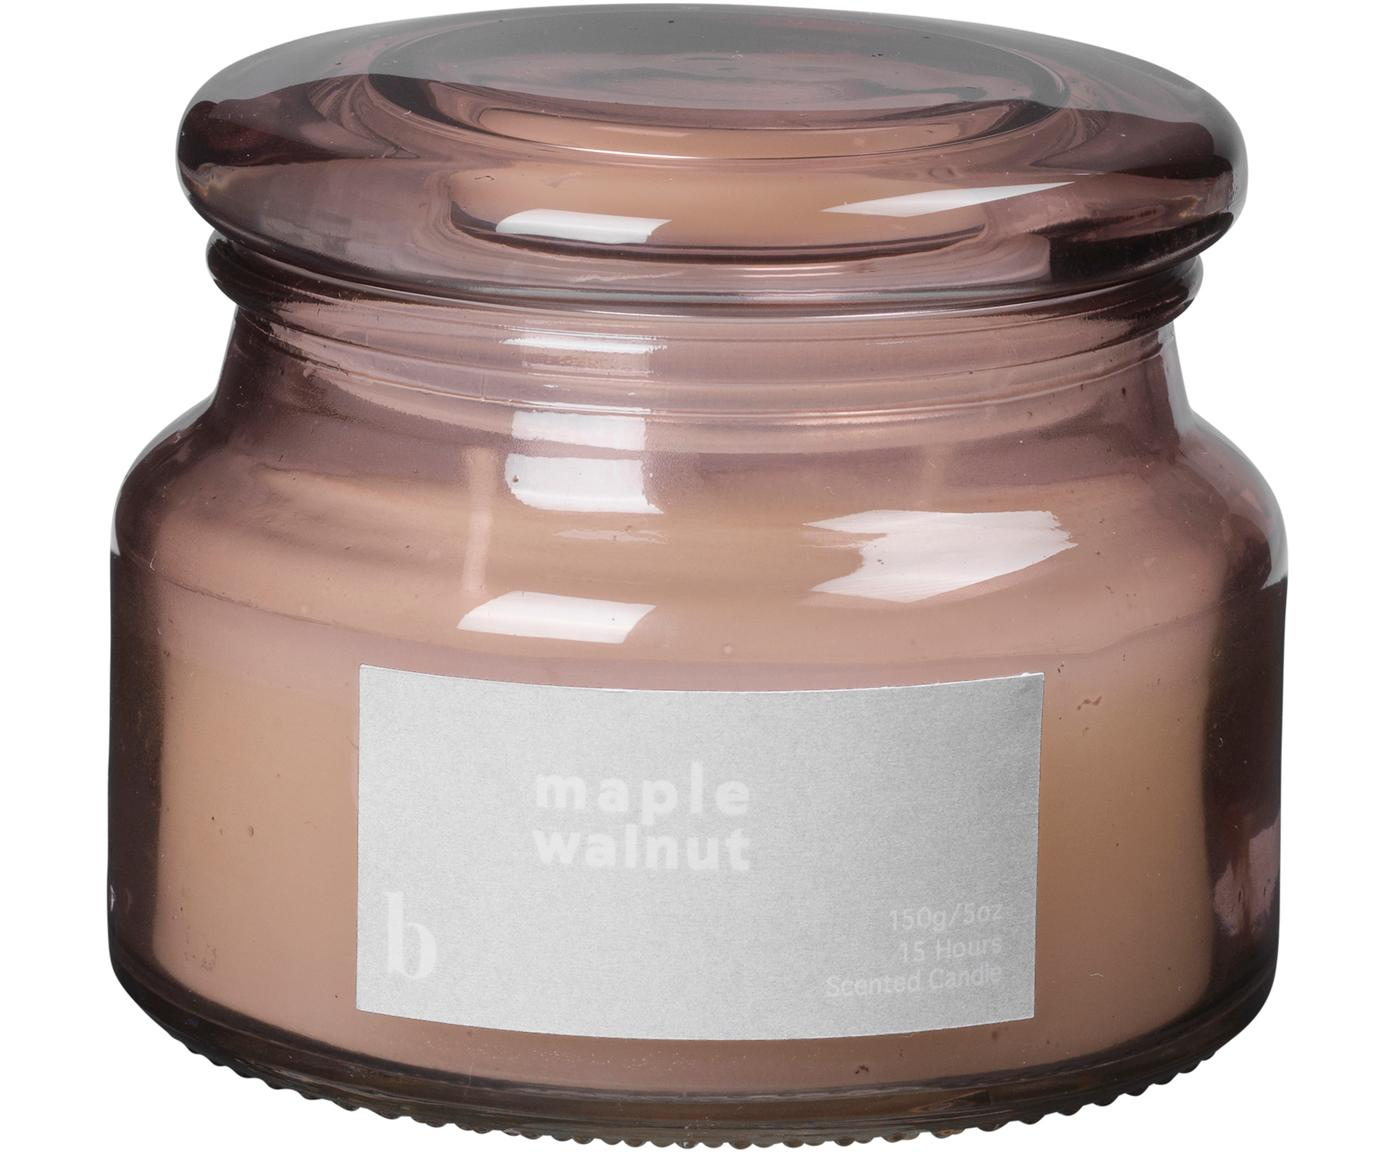 Vela perfumada Maple Walnut (nogal), Recipiente: vidrio, Rosa palo, Ø 10 x Al 8 cm